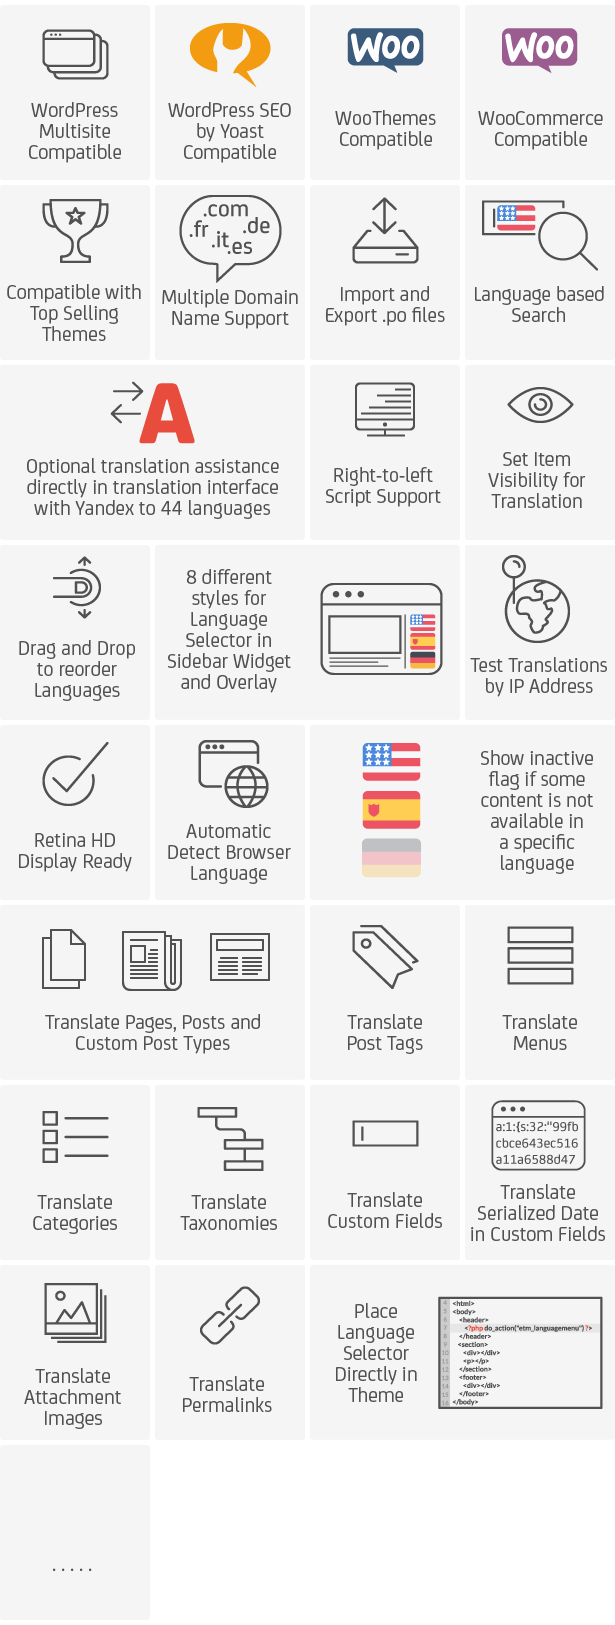 Easy Translation Manager for WordPress version 4.0 main feature overview